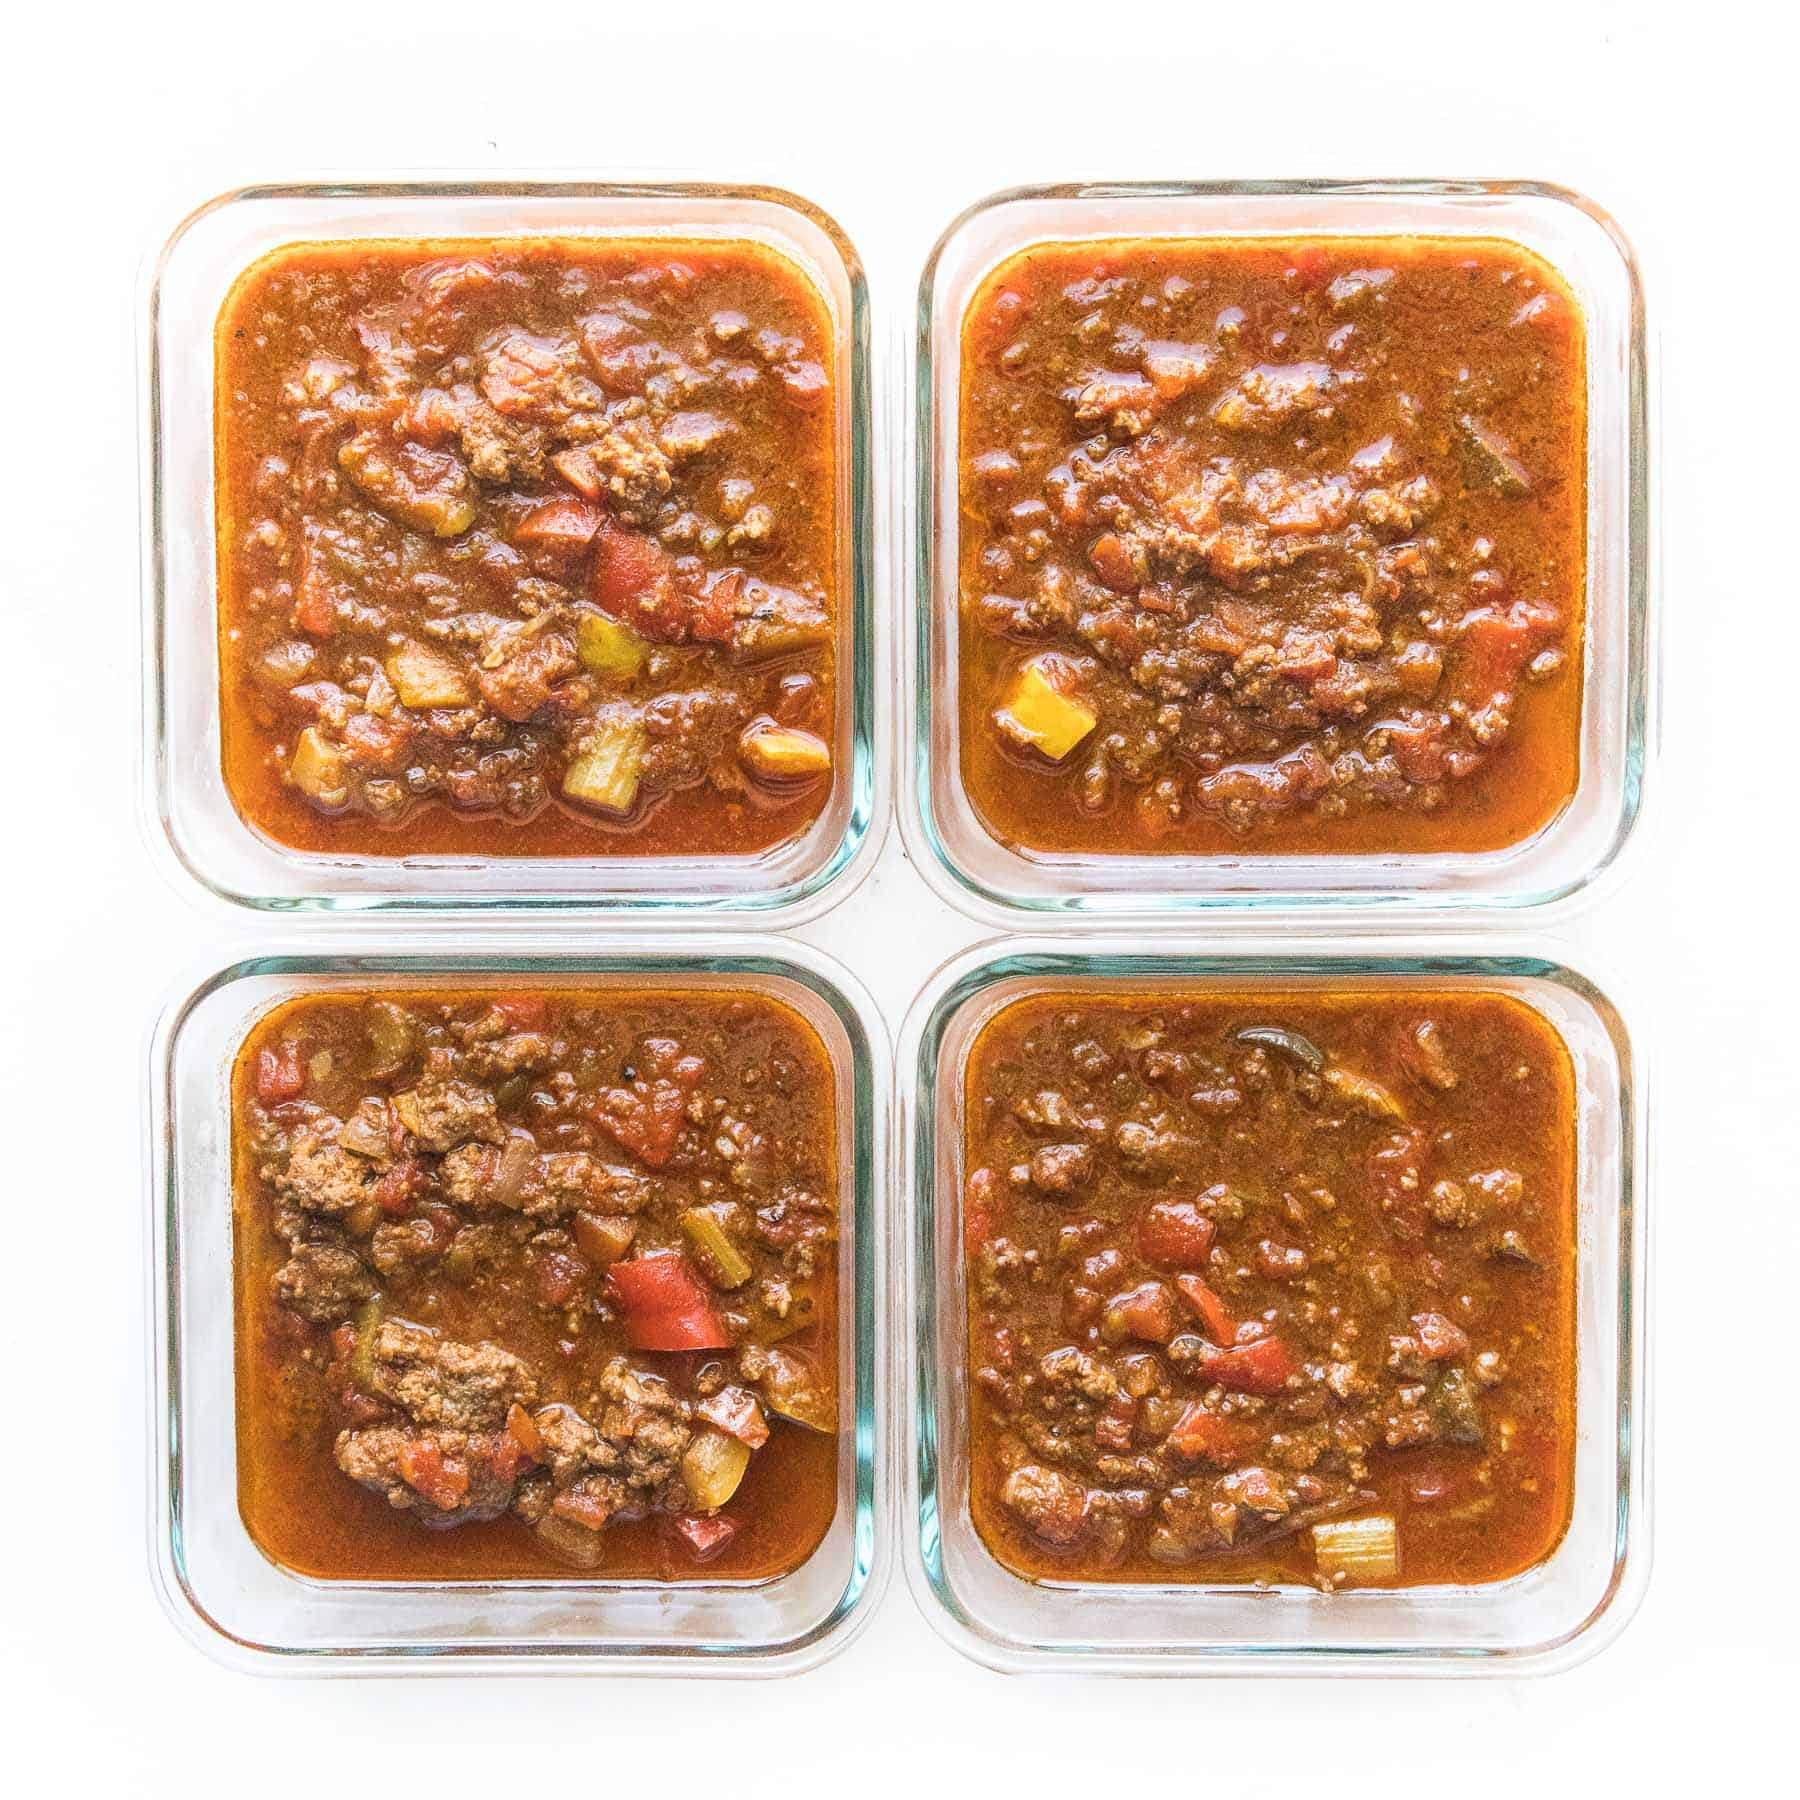 chili in meal prep containers on a white background